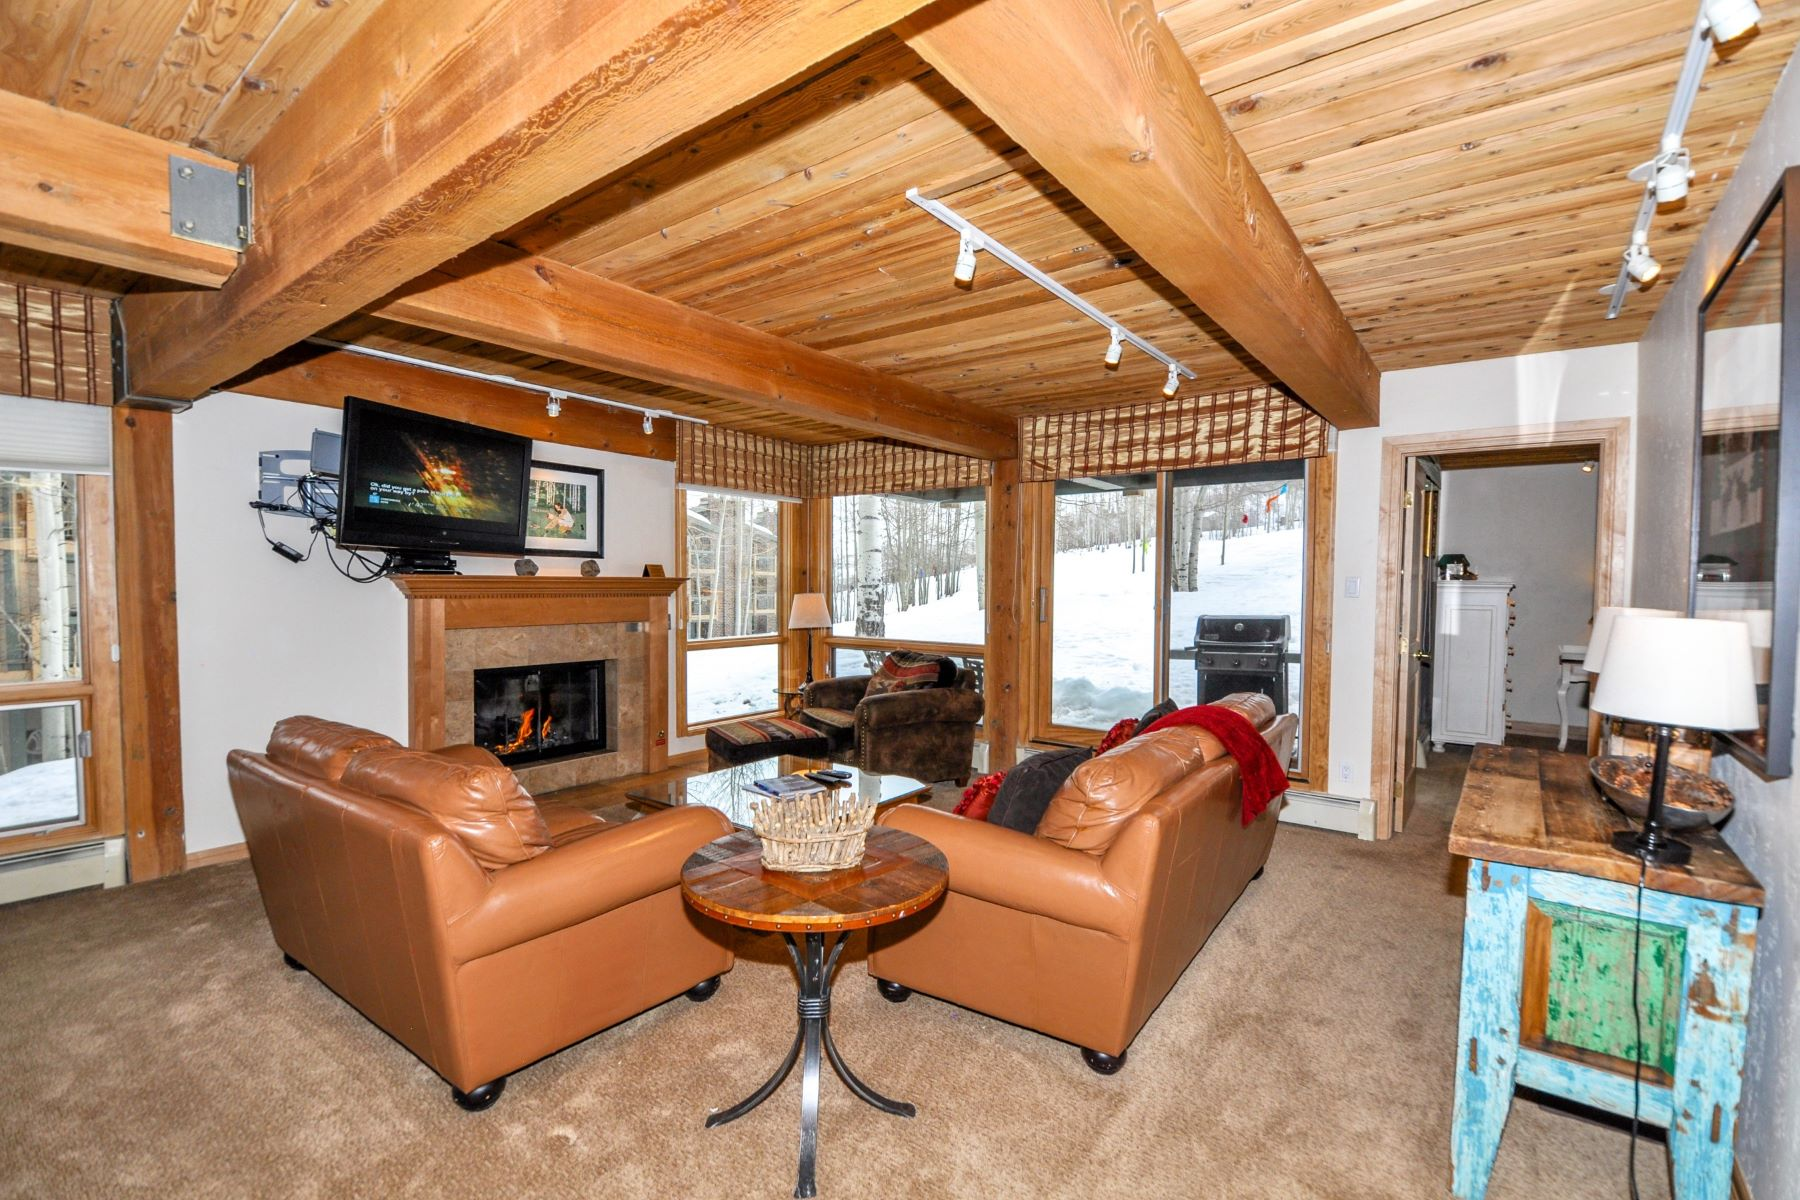 Copropriété pour l Vente à Ski Access to the Door 855 Carriage Way, Trails Unit 103 Snowmass Village, Colorado, 81615 États-Unis